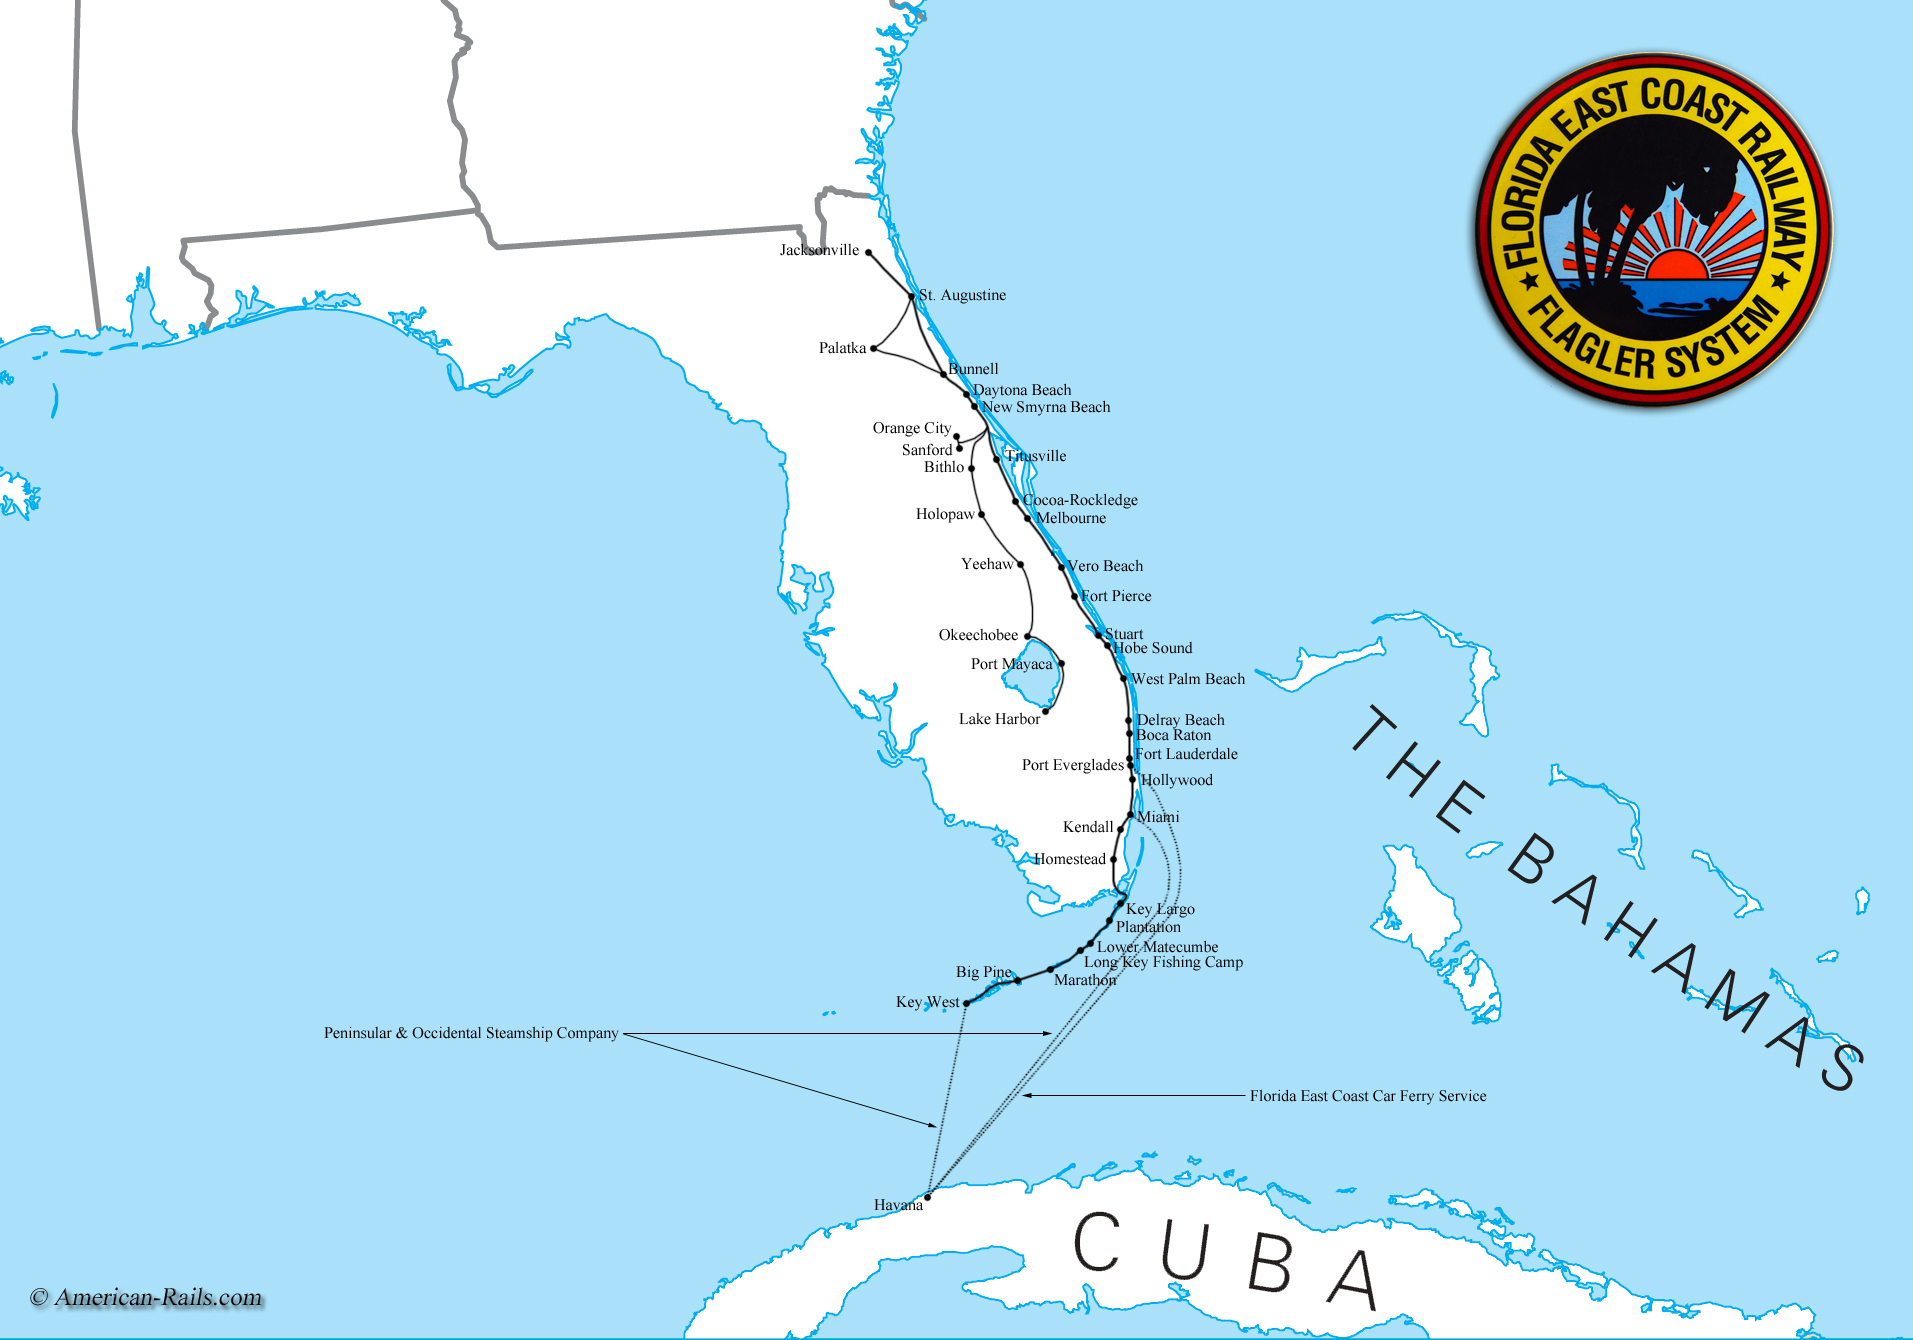 Not to mention the Florida East Coast Railroad out to Key West, which